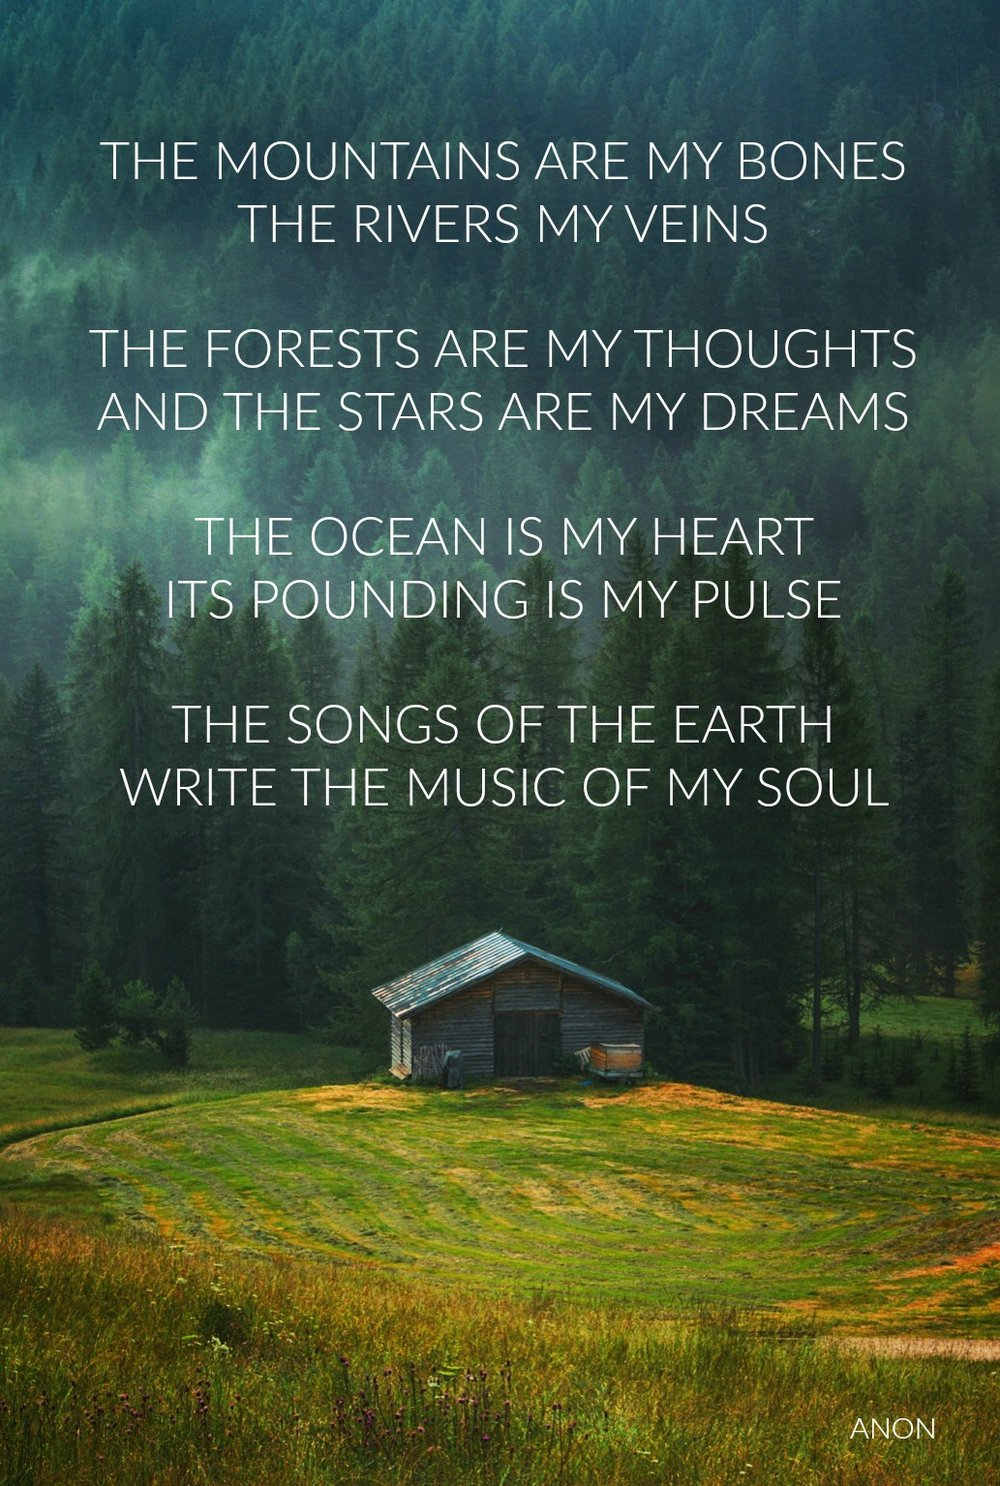 The Mountains Are My Bones. Circle of Daydreams. www.circleofdaydreams.com